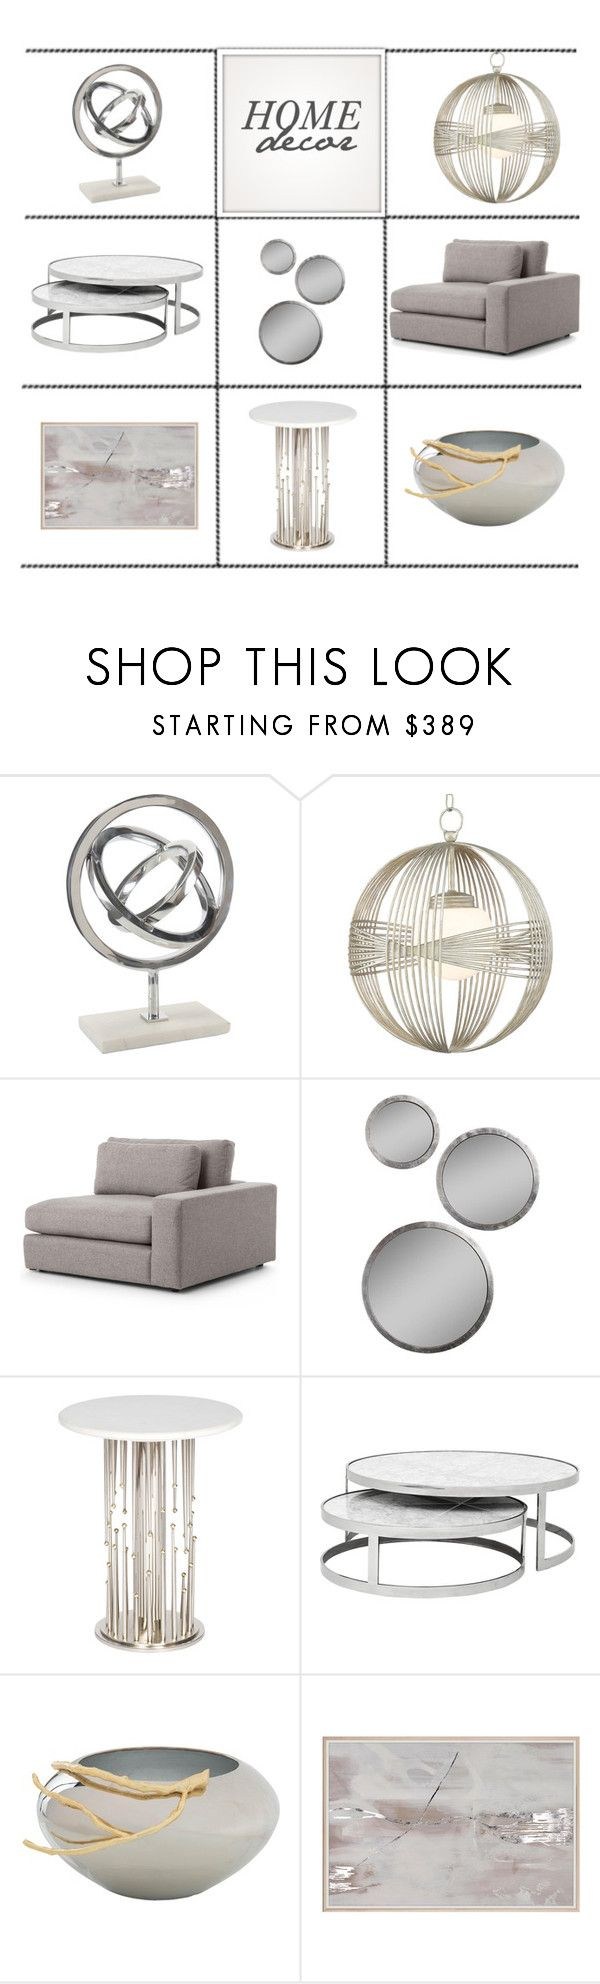 552 best mood boards images on pinterest design homes home home silver home decor by kathykuohome on polyvore featuring interior interiors interior design home